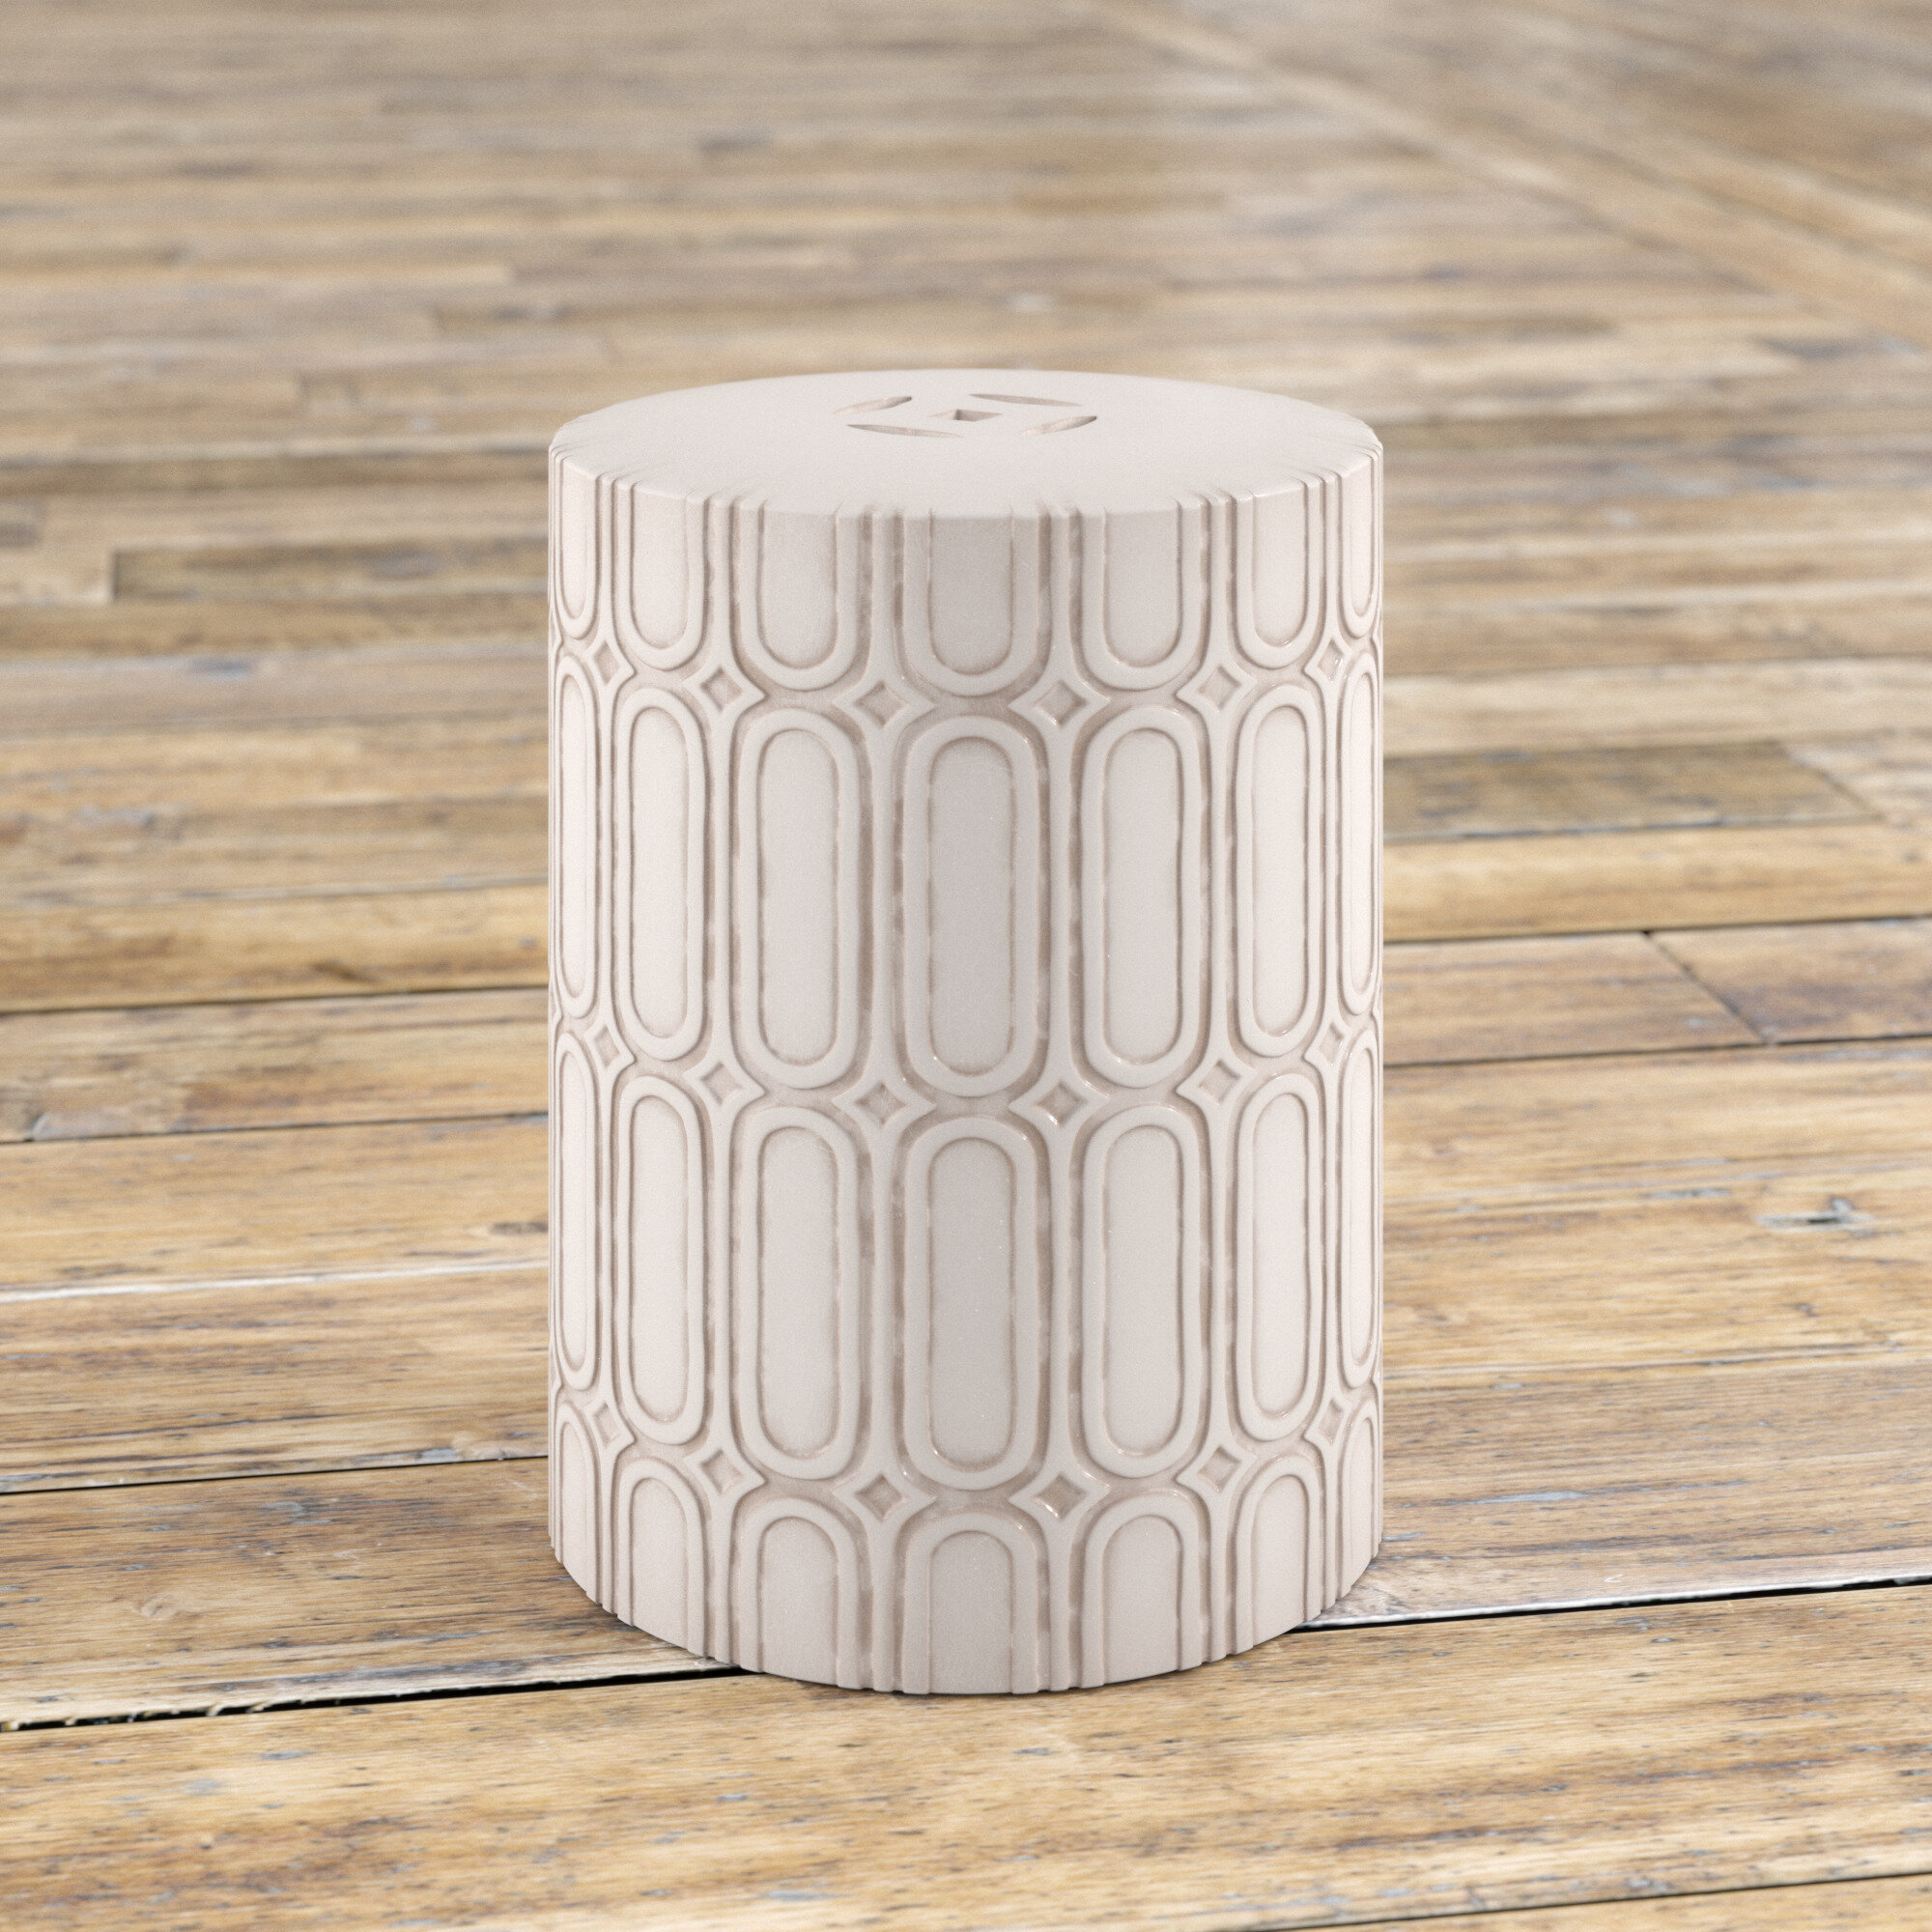 Sosa Ceramic Garden Stool Intended For Karlov Ceramic Garden Stools (View 13 of 25)